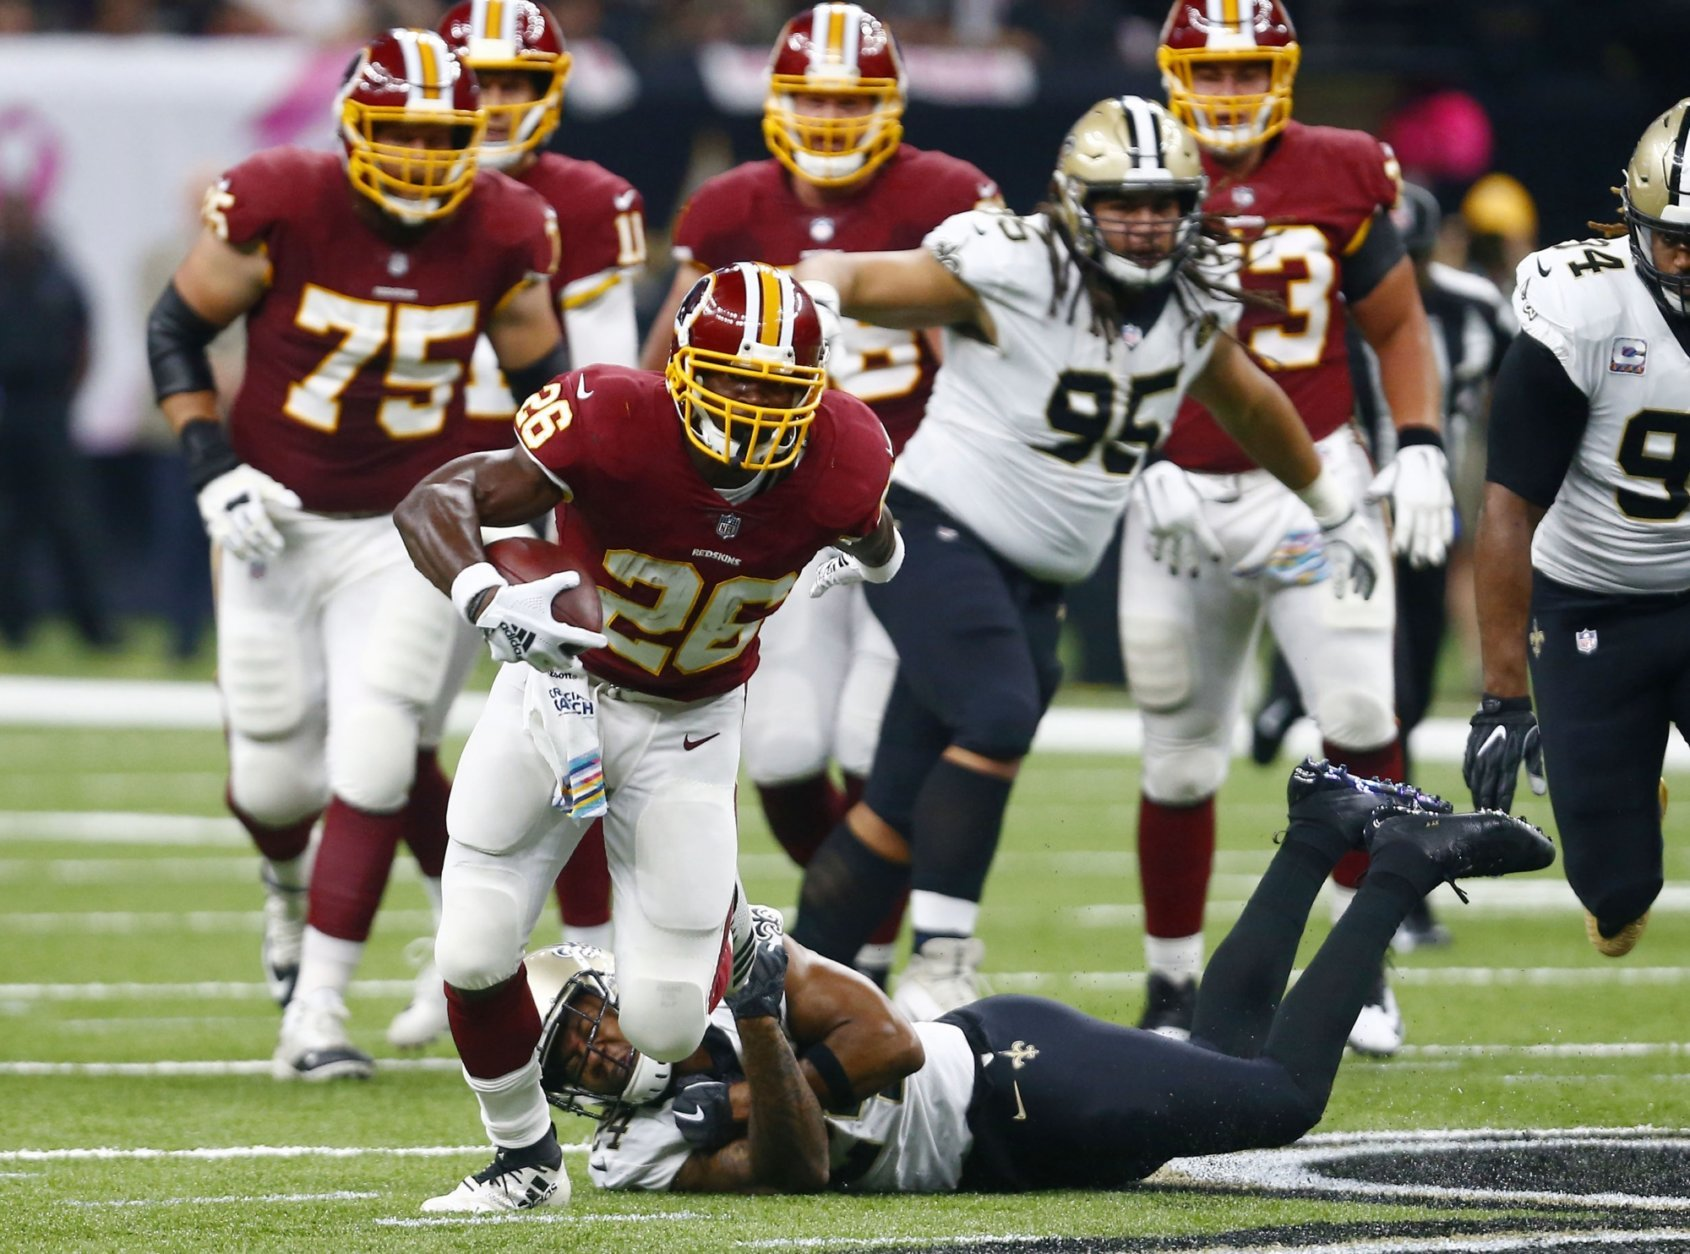 Washington Redskins running back Adrian Peterson (26) carries as New Orleans Saints strong safety Vonn Bell tries to tackle in the first half of an NFL football game in New Orleans, Monday, Oct. 8, 2018. (AP Photo/Butch Dill)